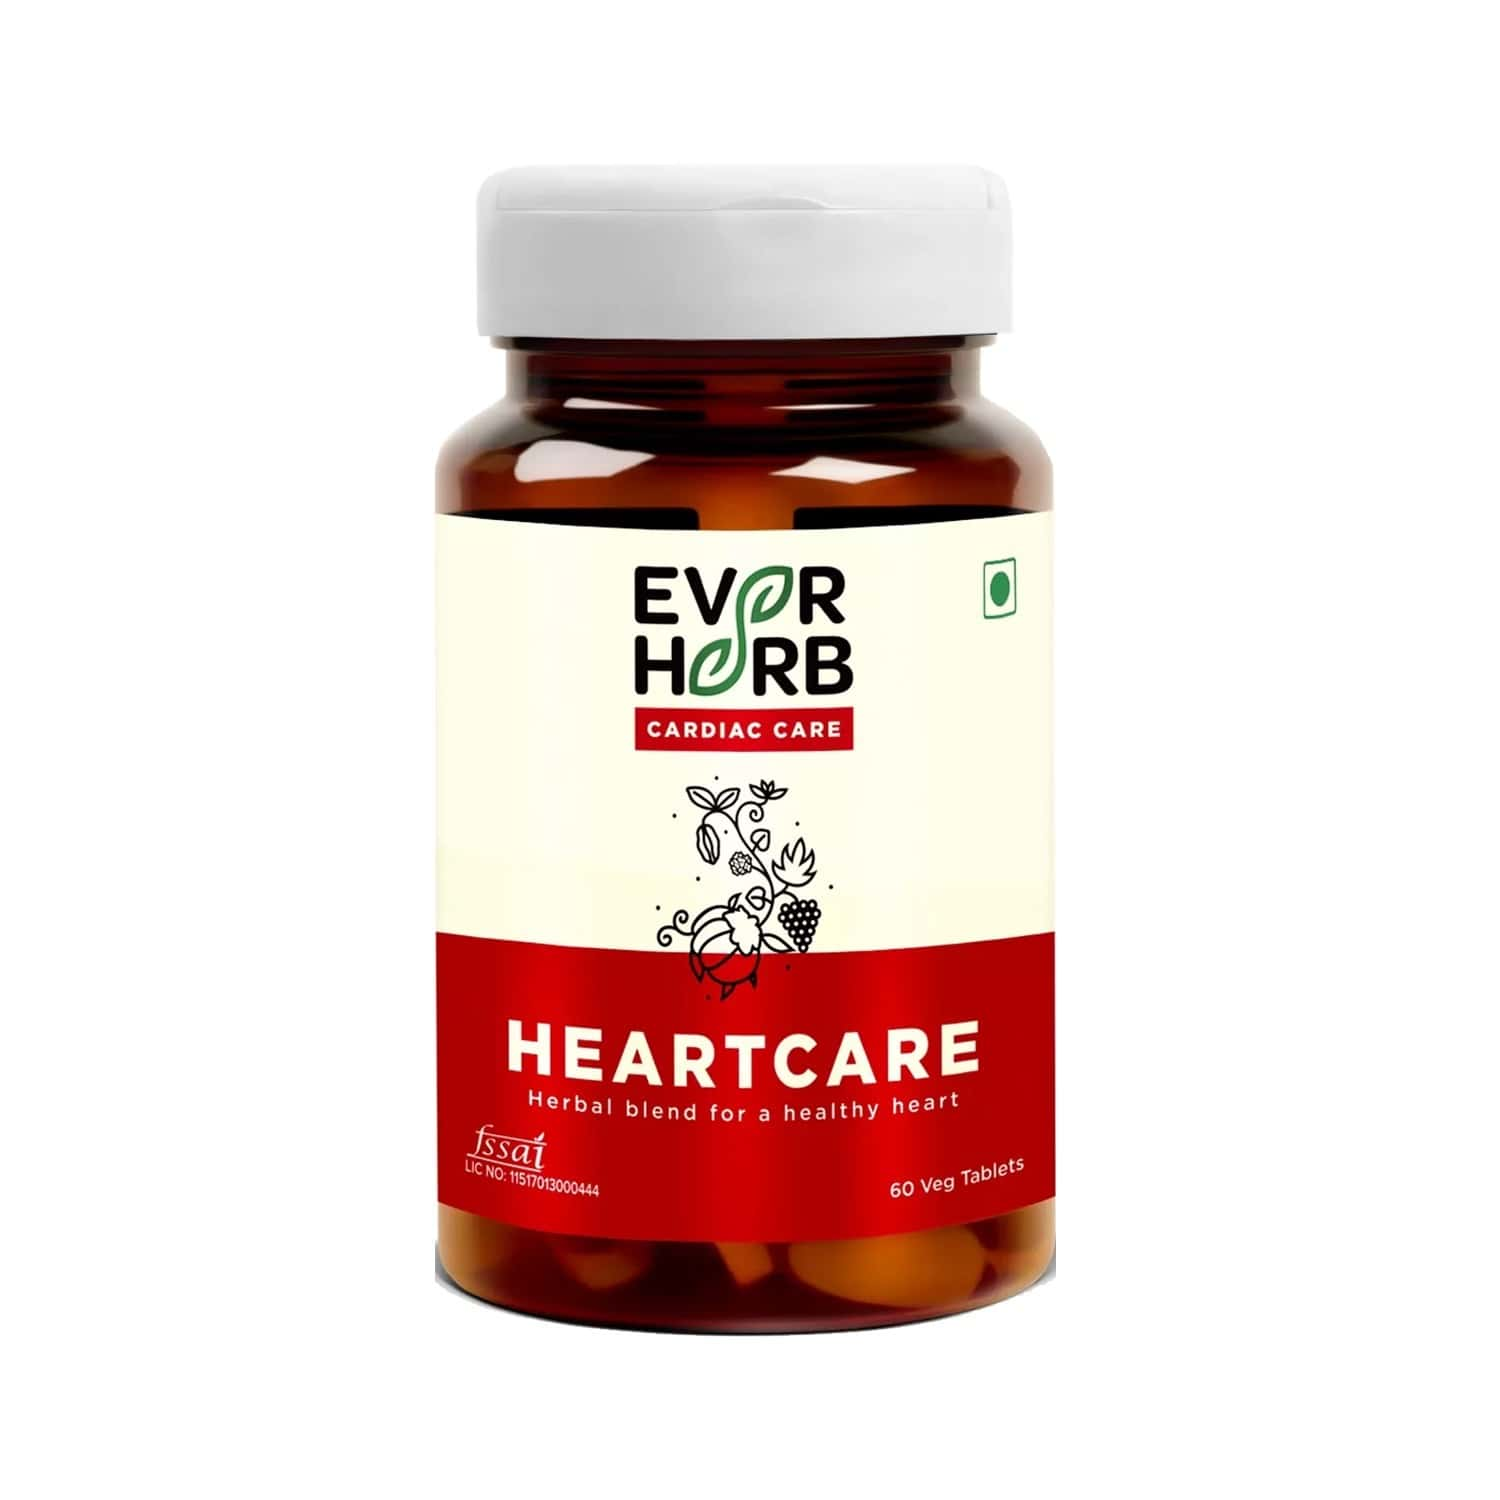 Everherb Heartcare - Blend Of 6 Powerful Herbs - Controls Blood Pressure - Bottle Of 60